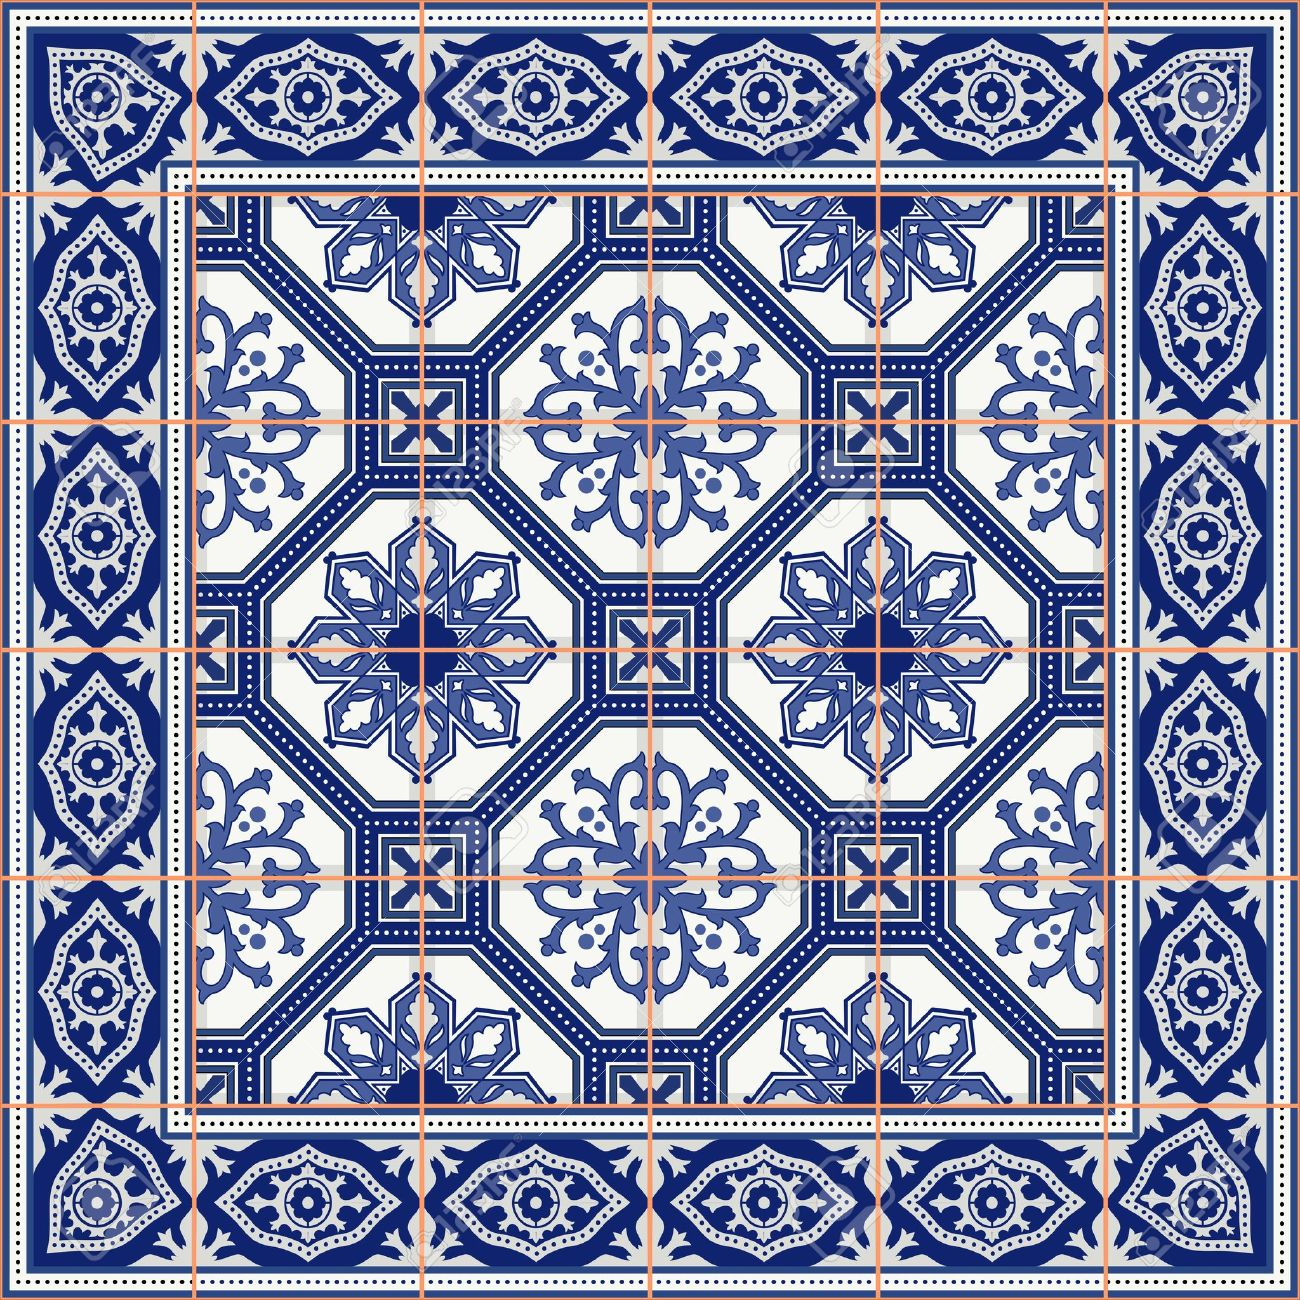 Gorgeous seamless pattern from tiles and border. Moroccan, Portuguese, Azulejo ornaments. Can be used for wallpaper, pattern fills, web page background,surface textures. - 47687161